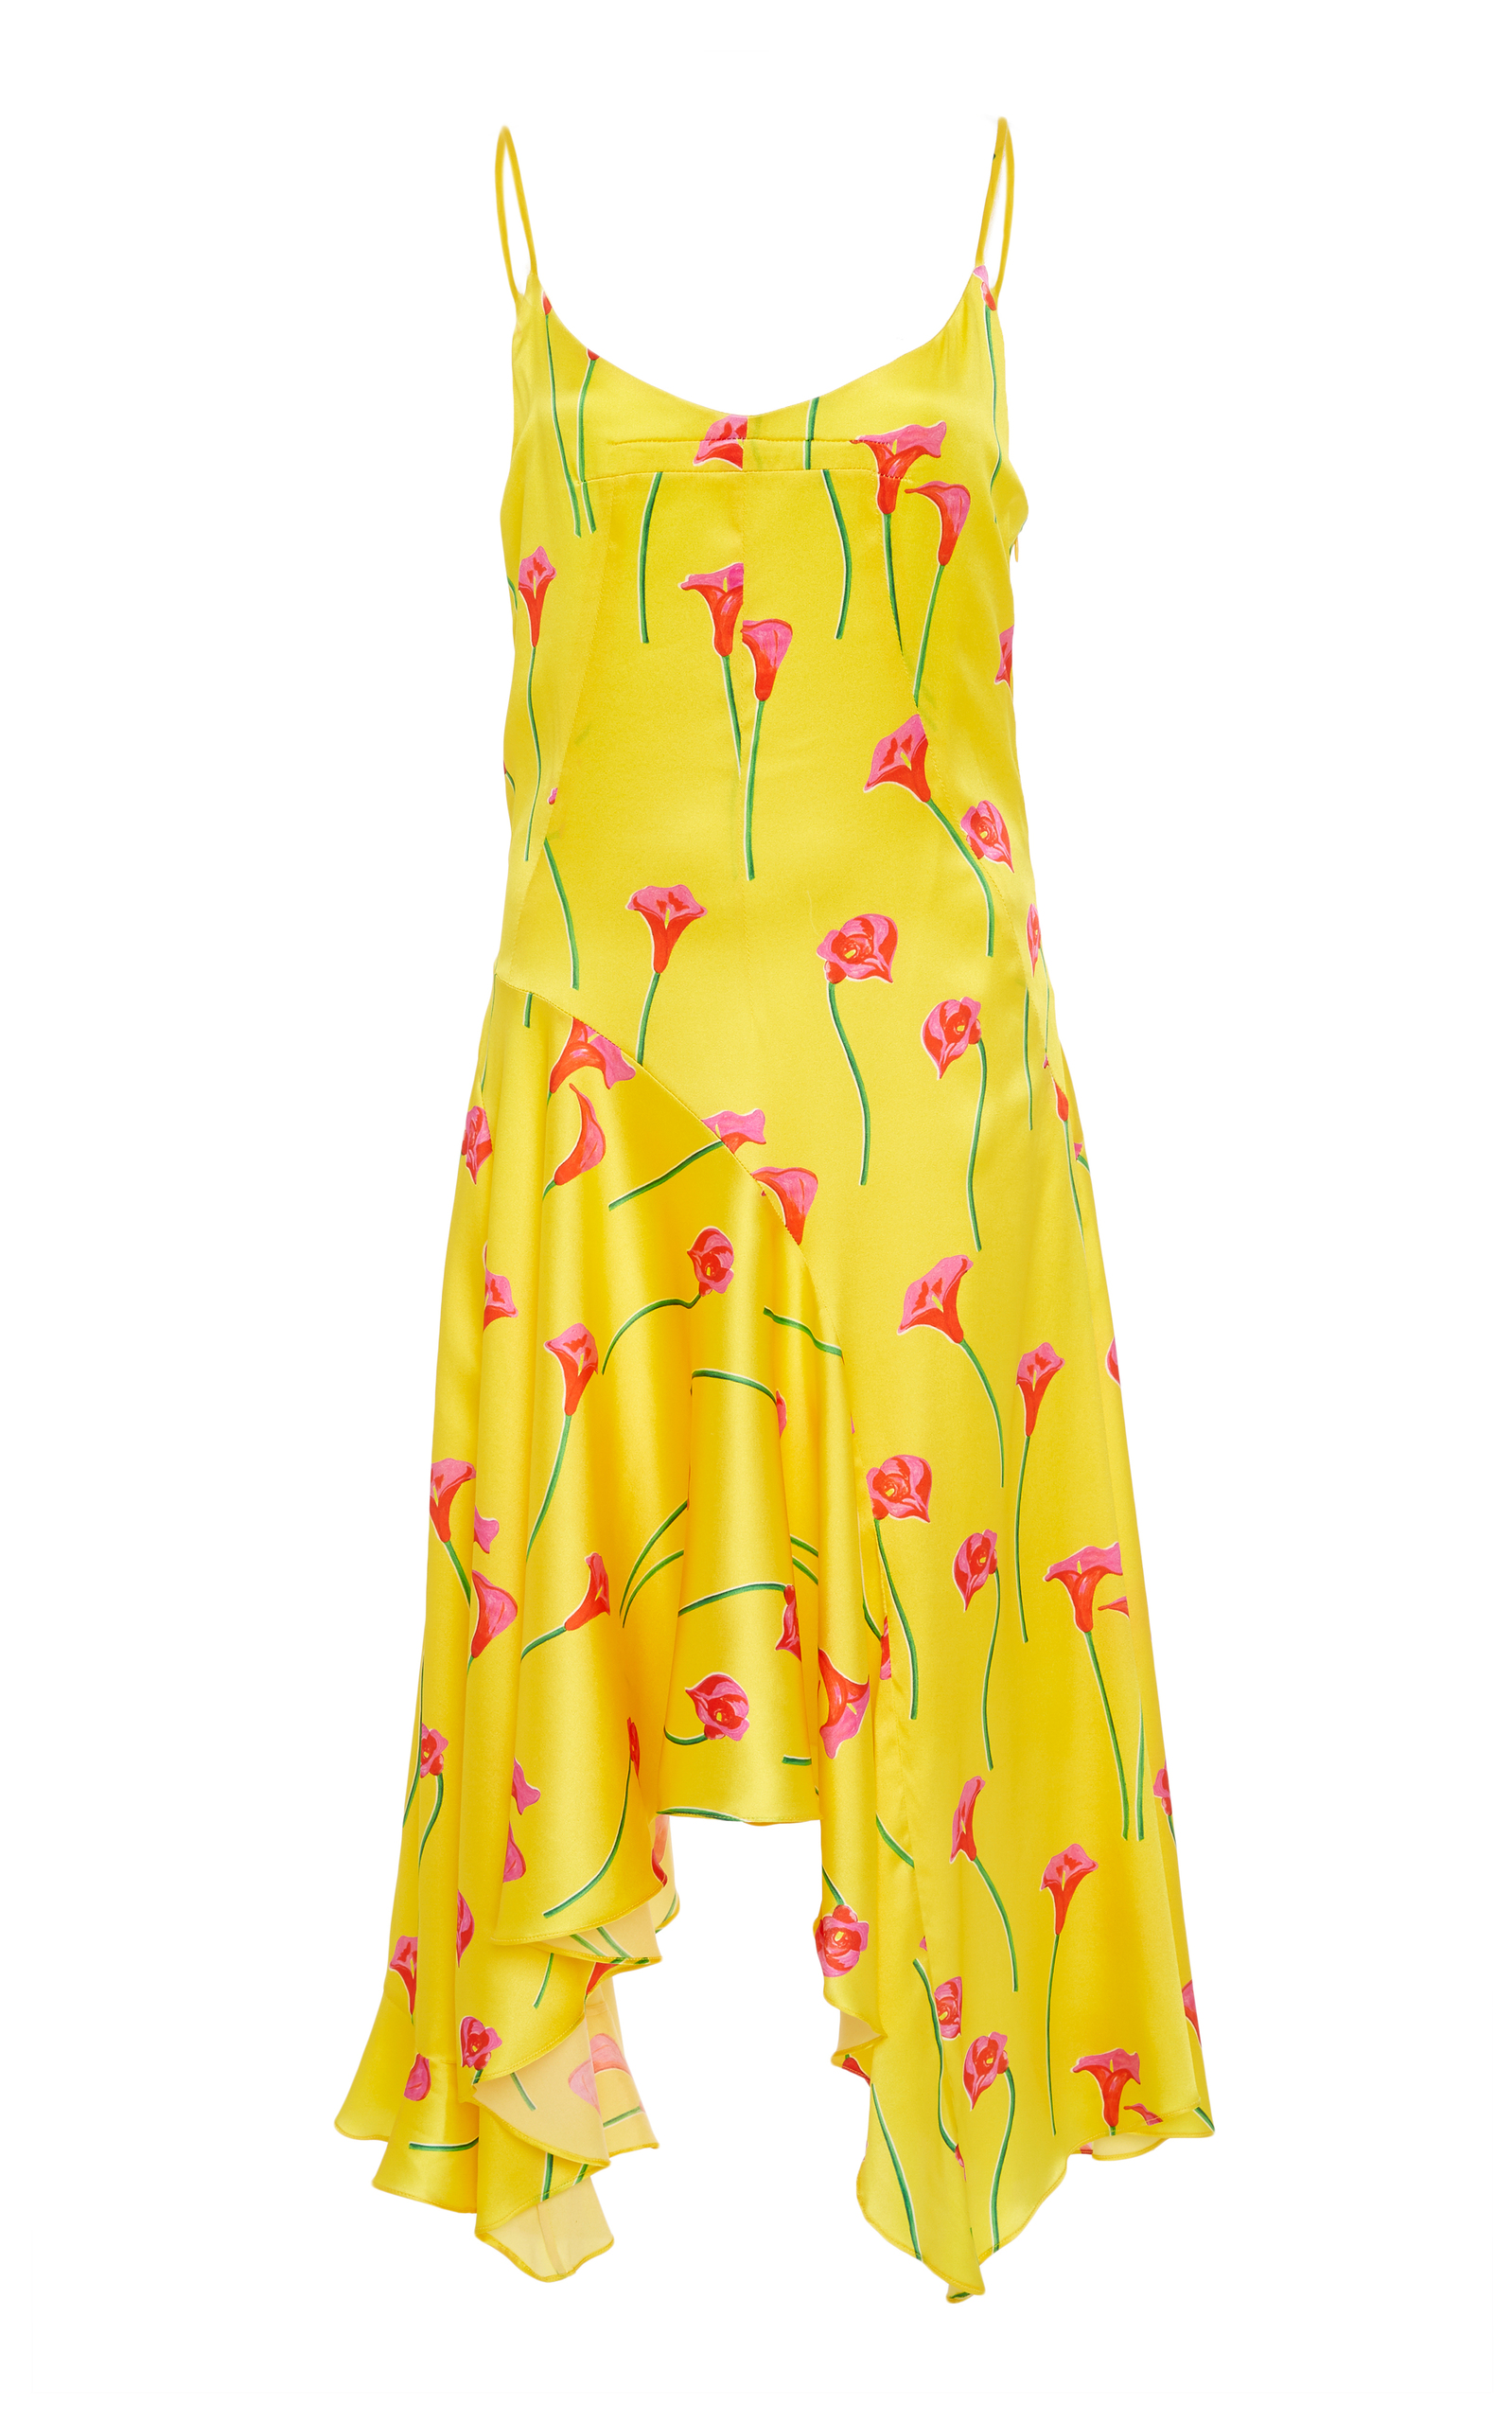 CAROLINE CONSTAS Marie Floral-Print Asymmetric Slip Dress in Yellow